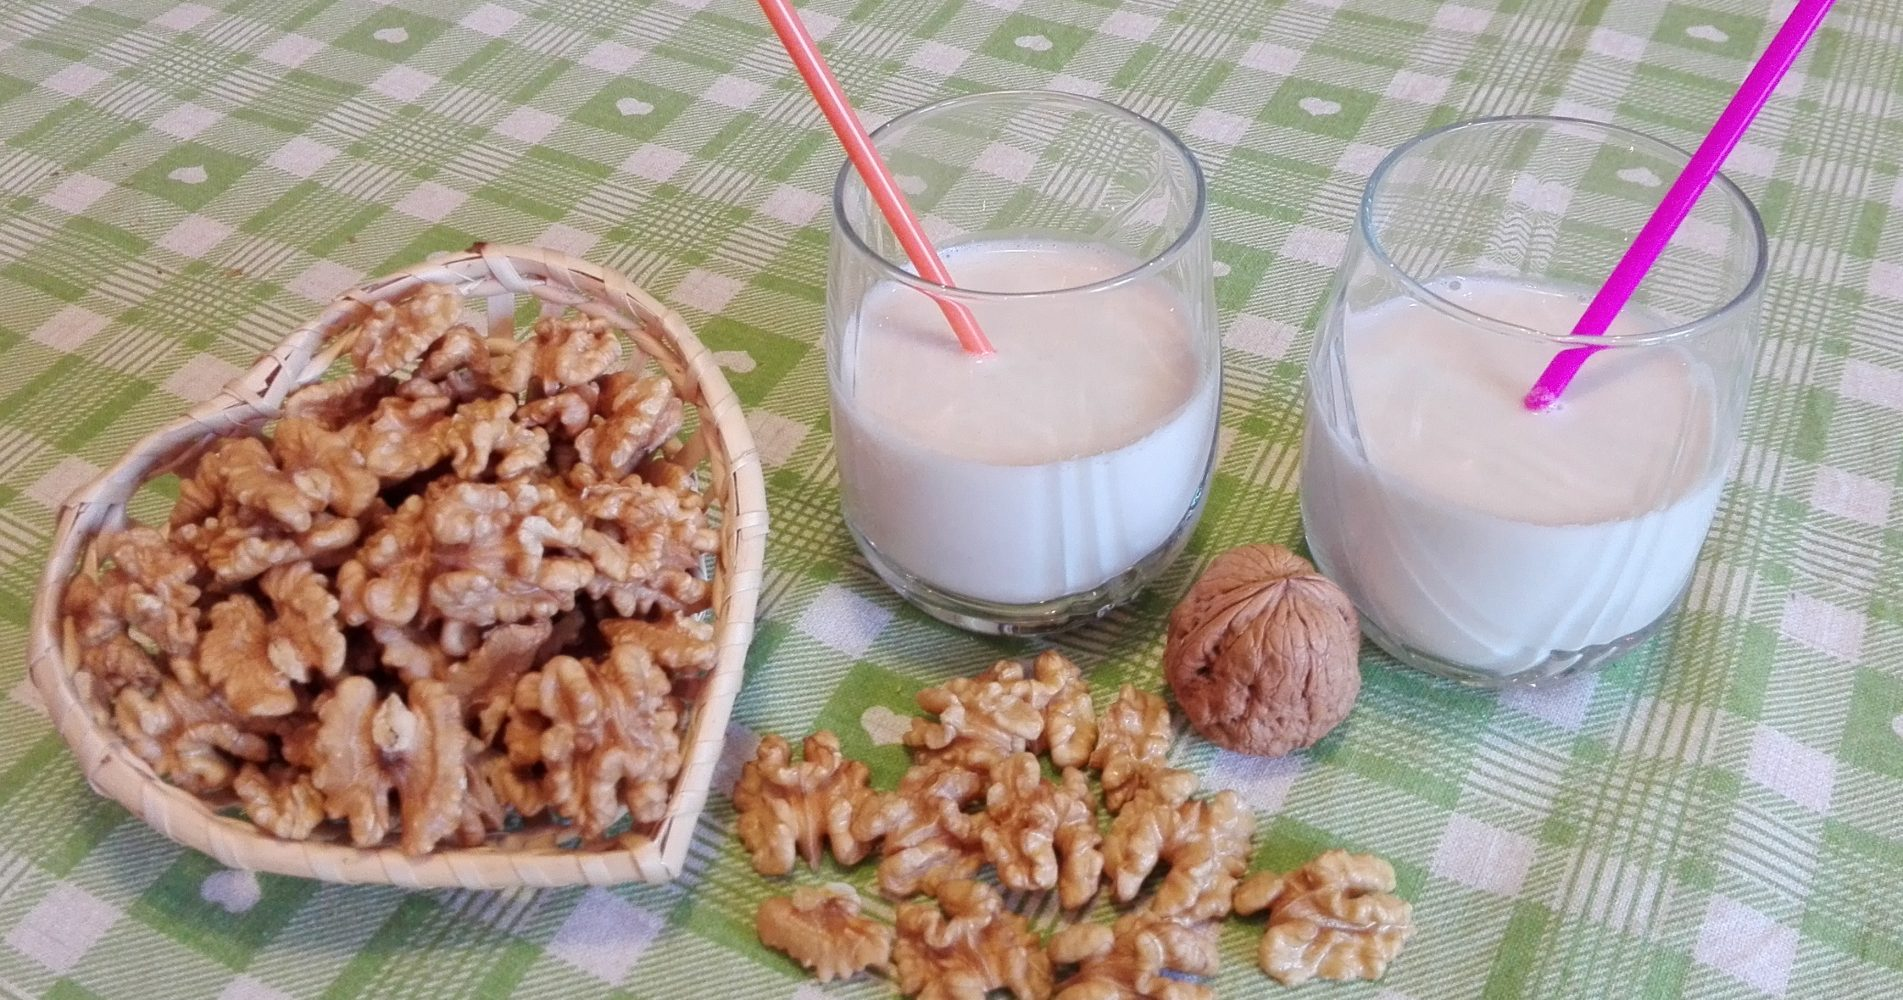 Latte di noci: ingredienti, ricetta e preparazione - Walnut milk: ingredients, recipe and preparation